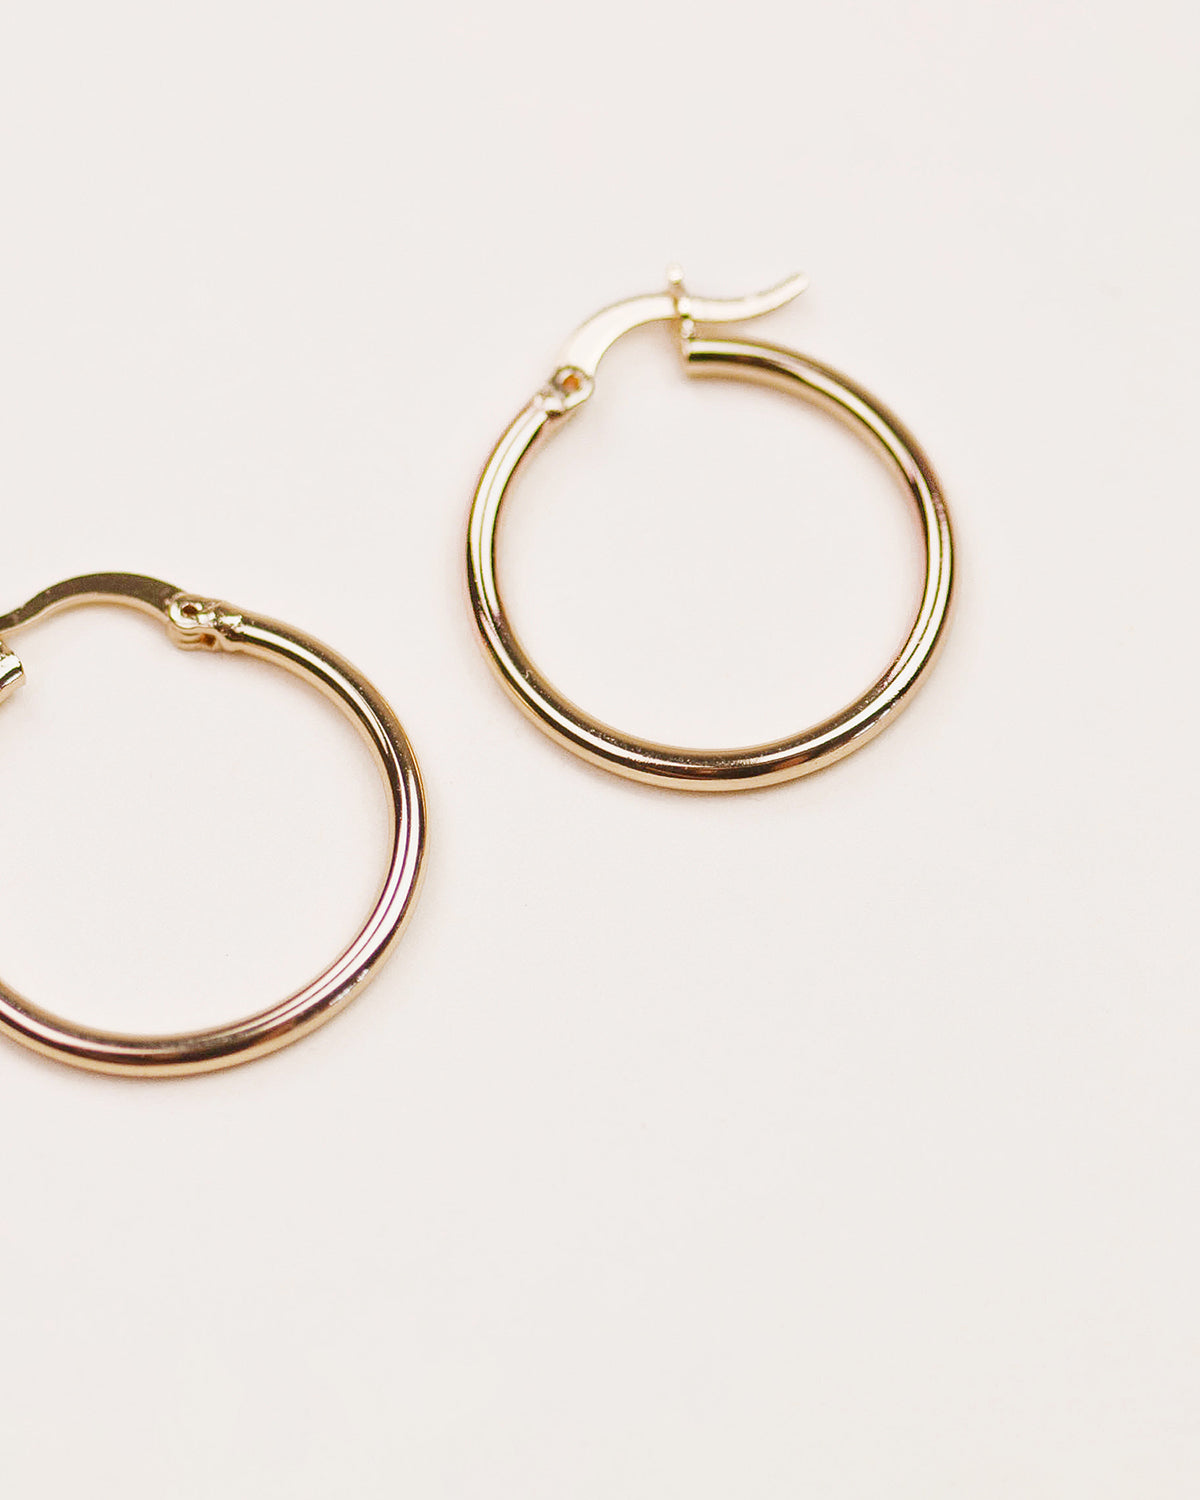 Image of Hilda Simple Hoop Earrings - Maxi